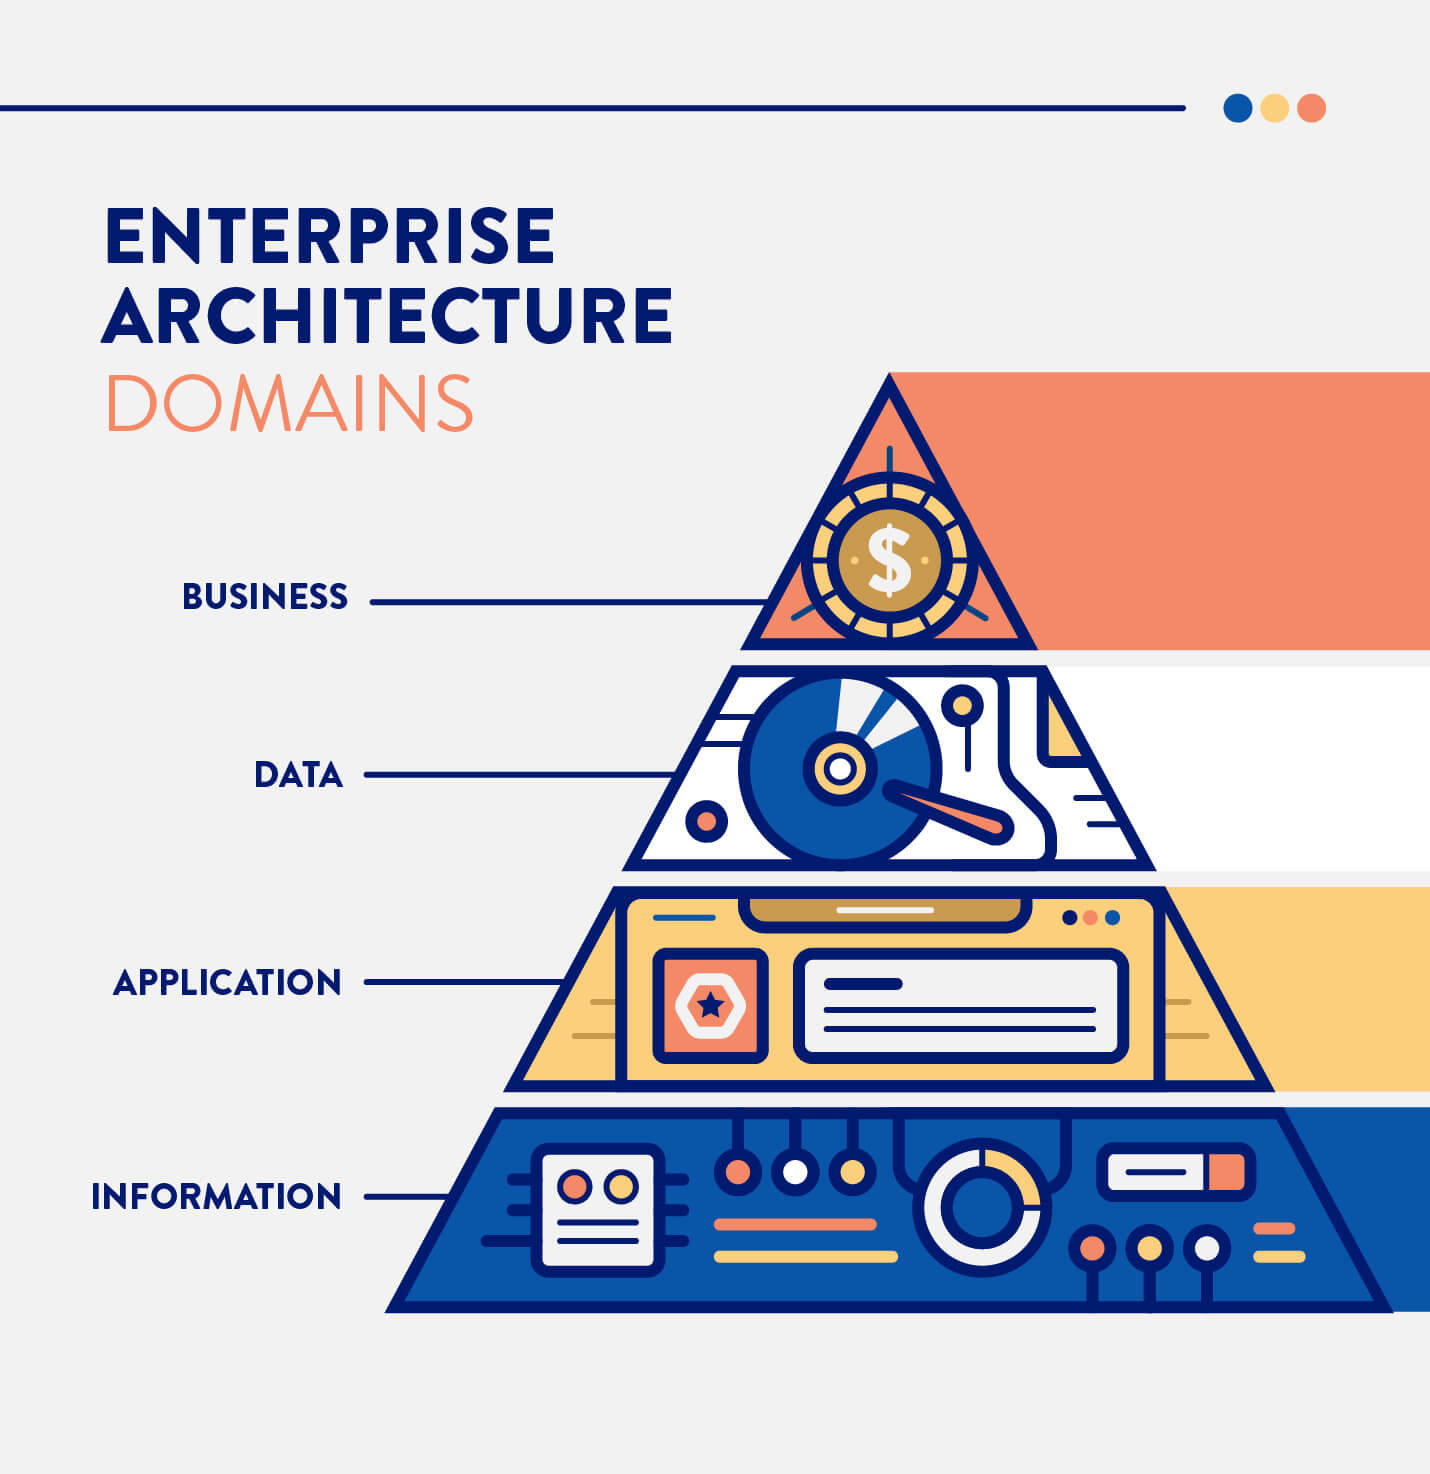 layers of the Business, data, application, and information domains for enterprise architecture